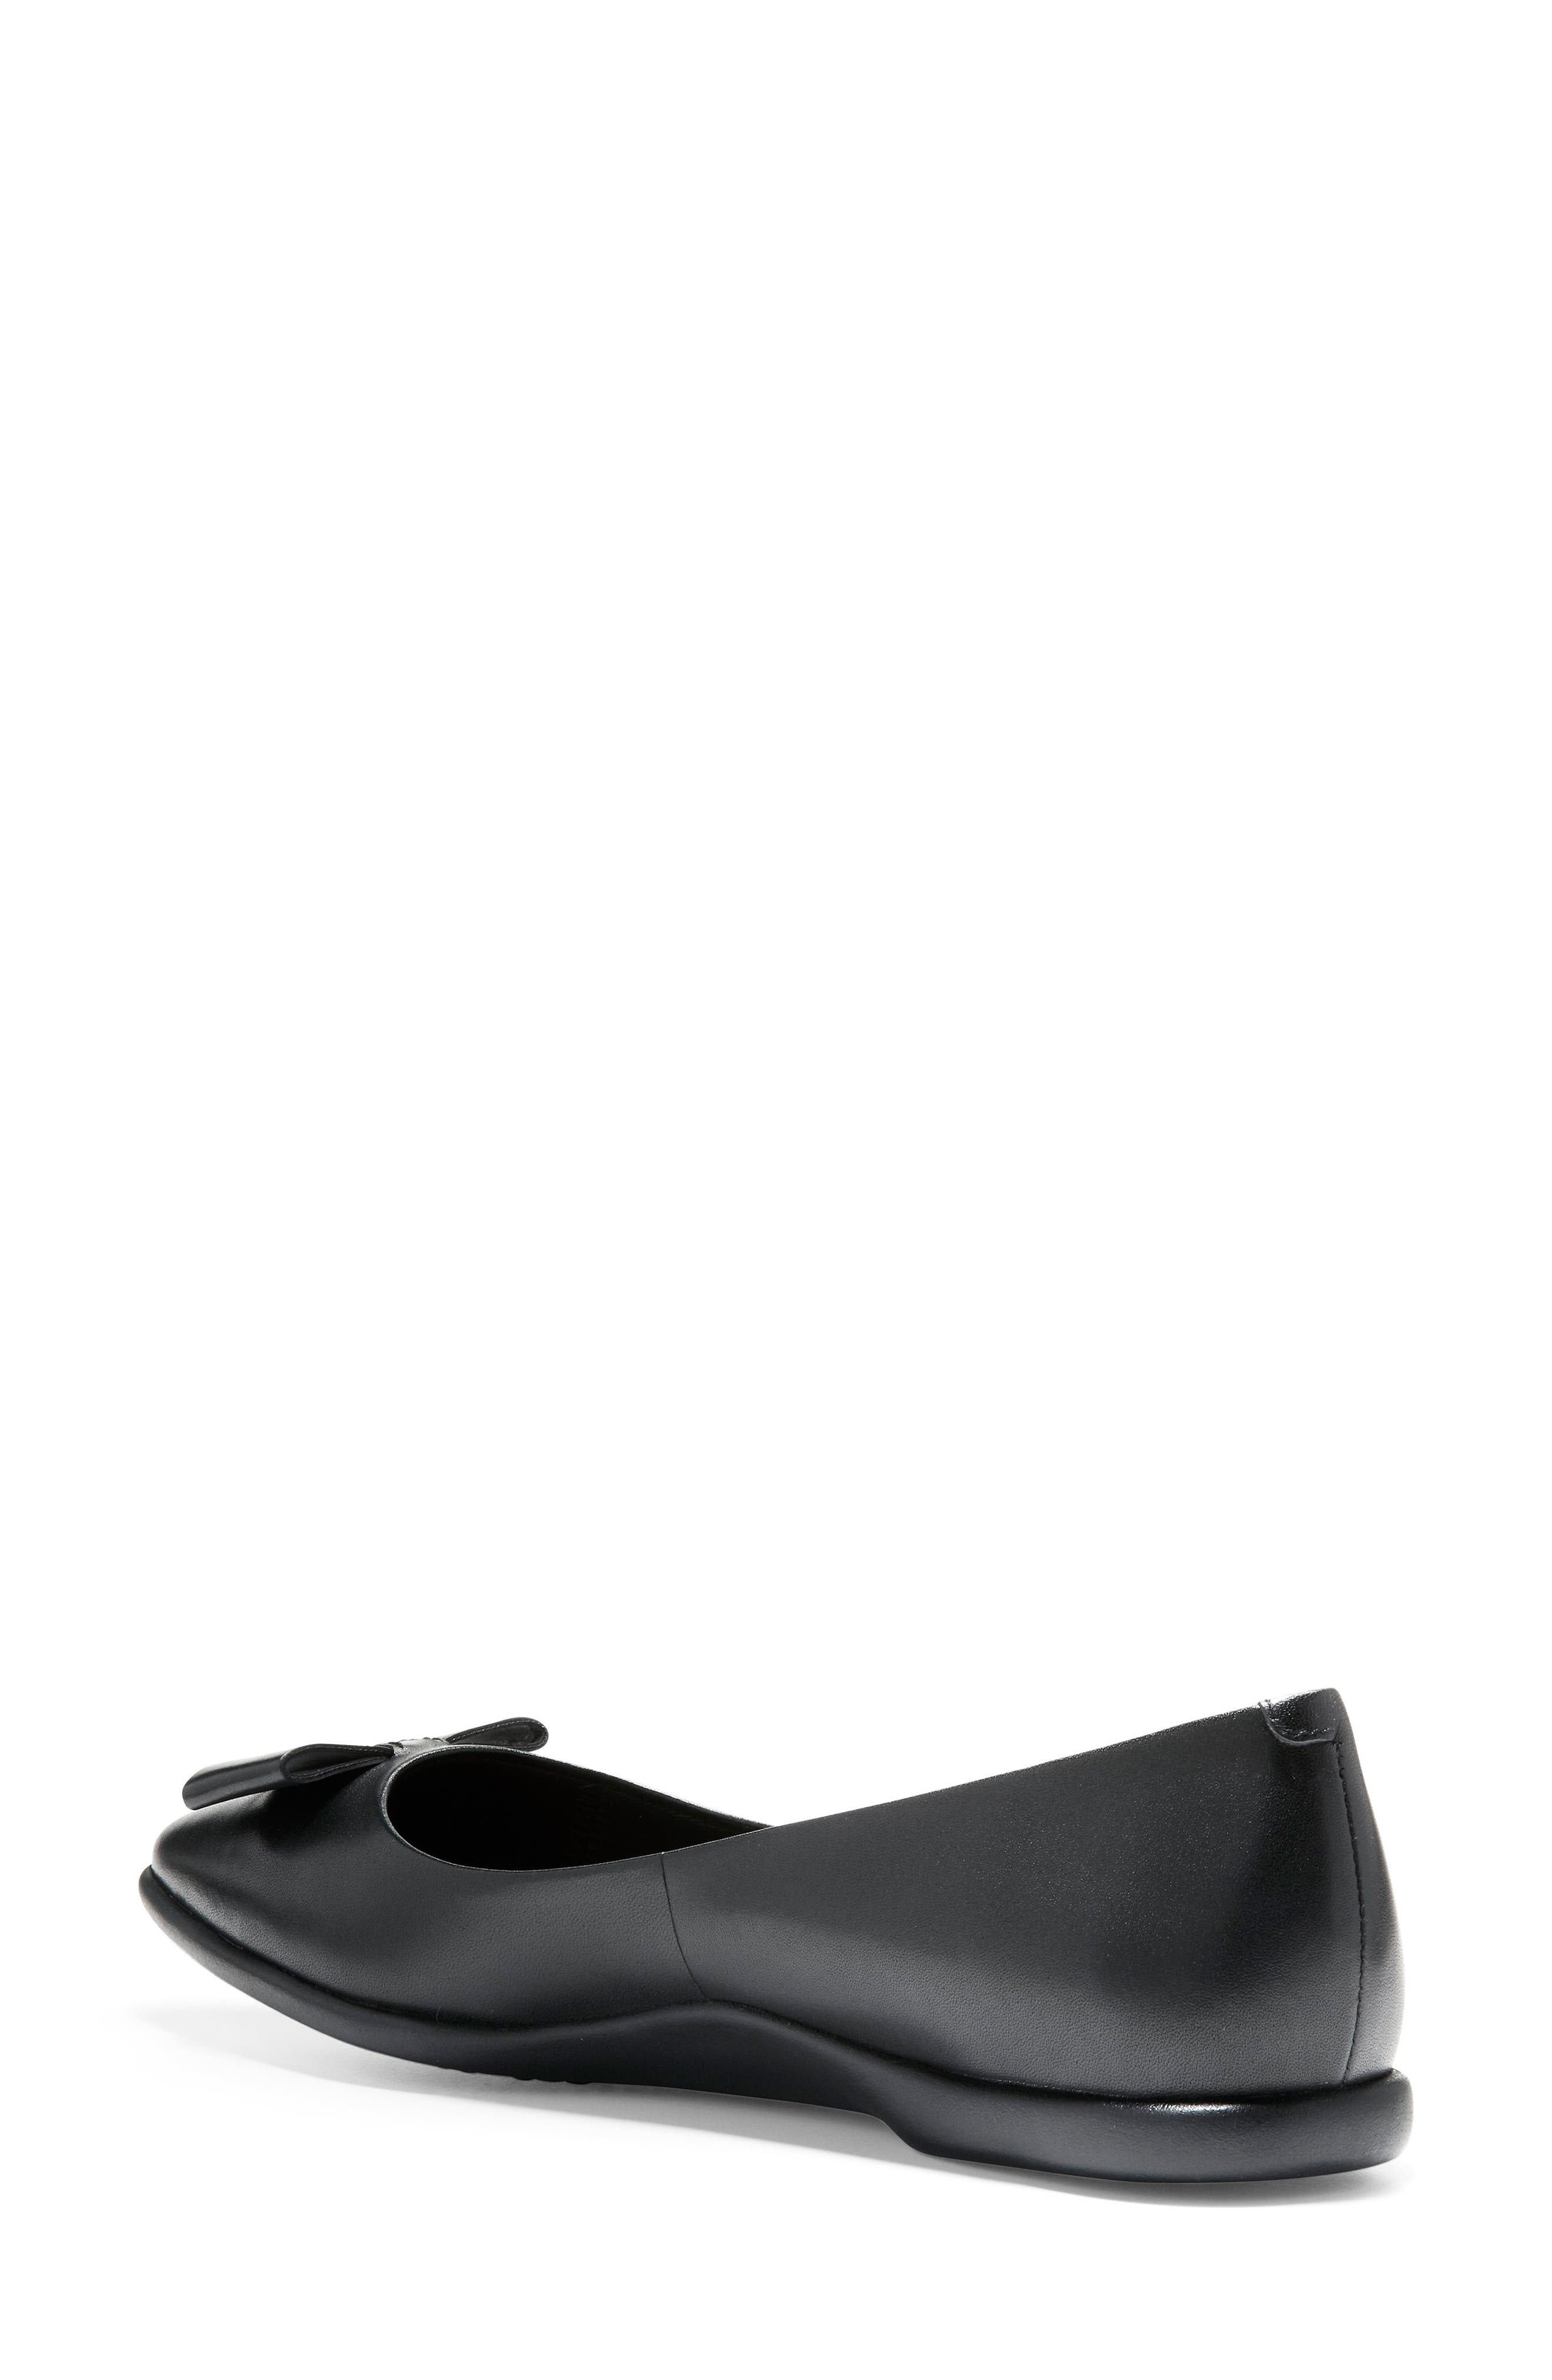 COLE HAAN,                             3.ZeroGrand Skimmer Flat,                             Alternate thumbnail 2, color,                             BLACK LEATHER